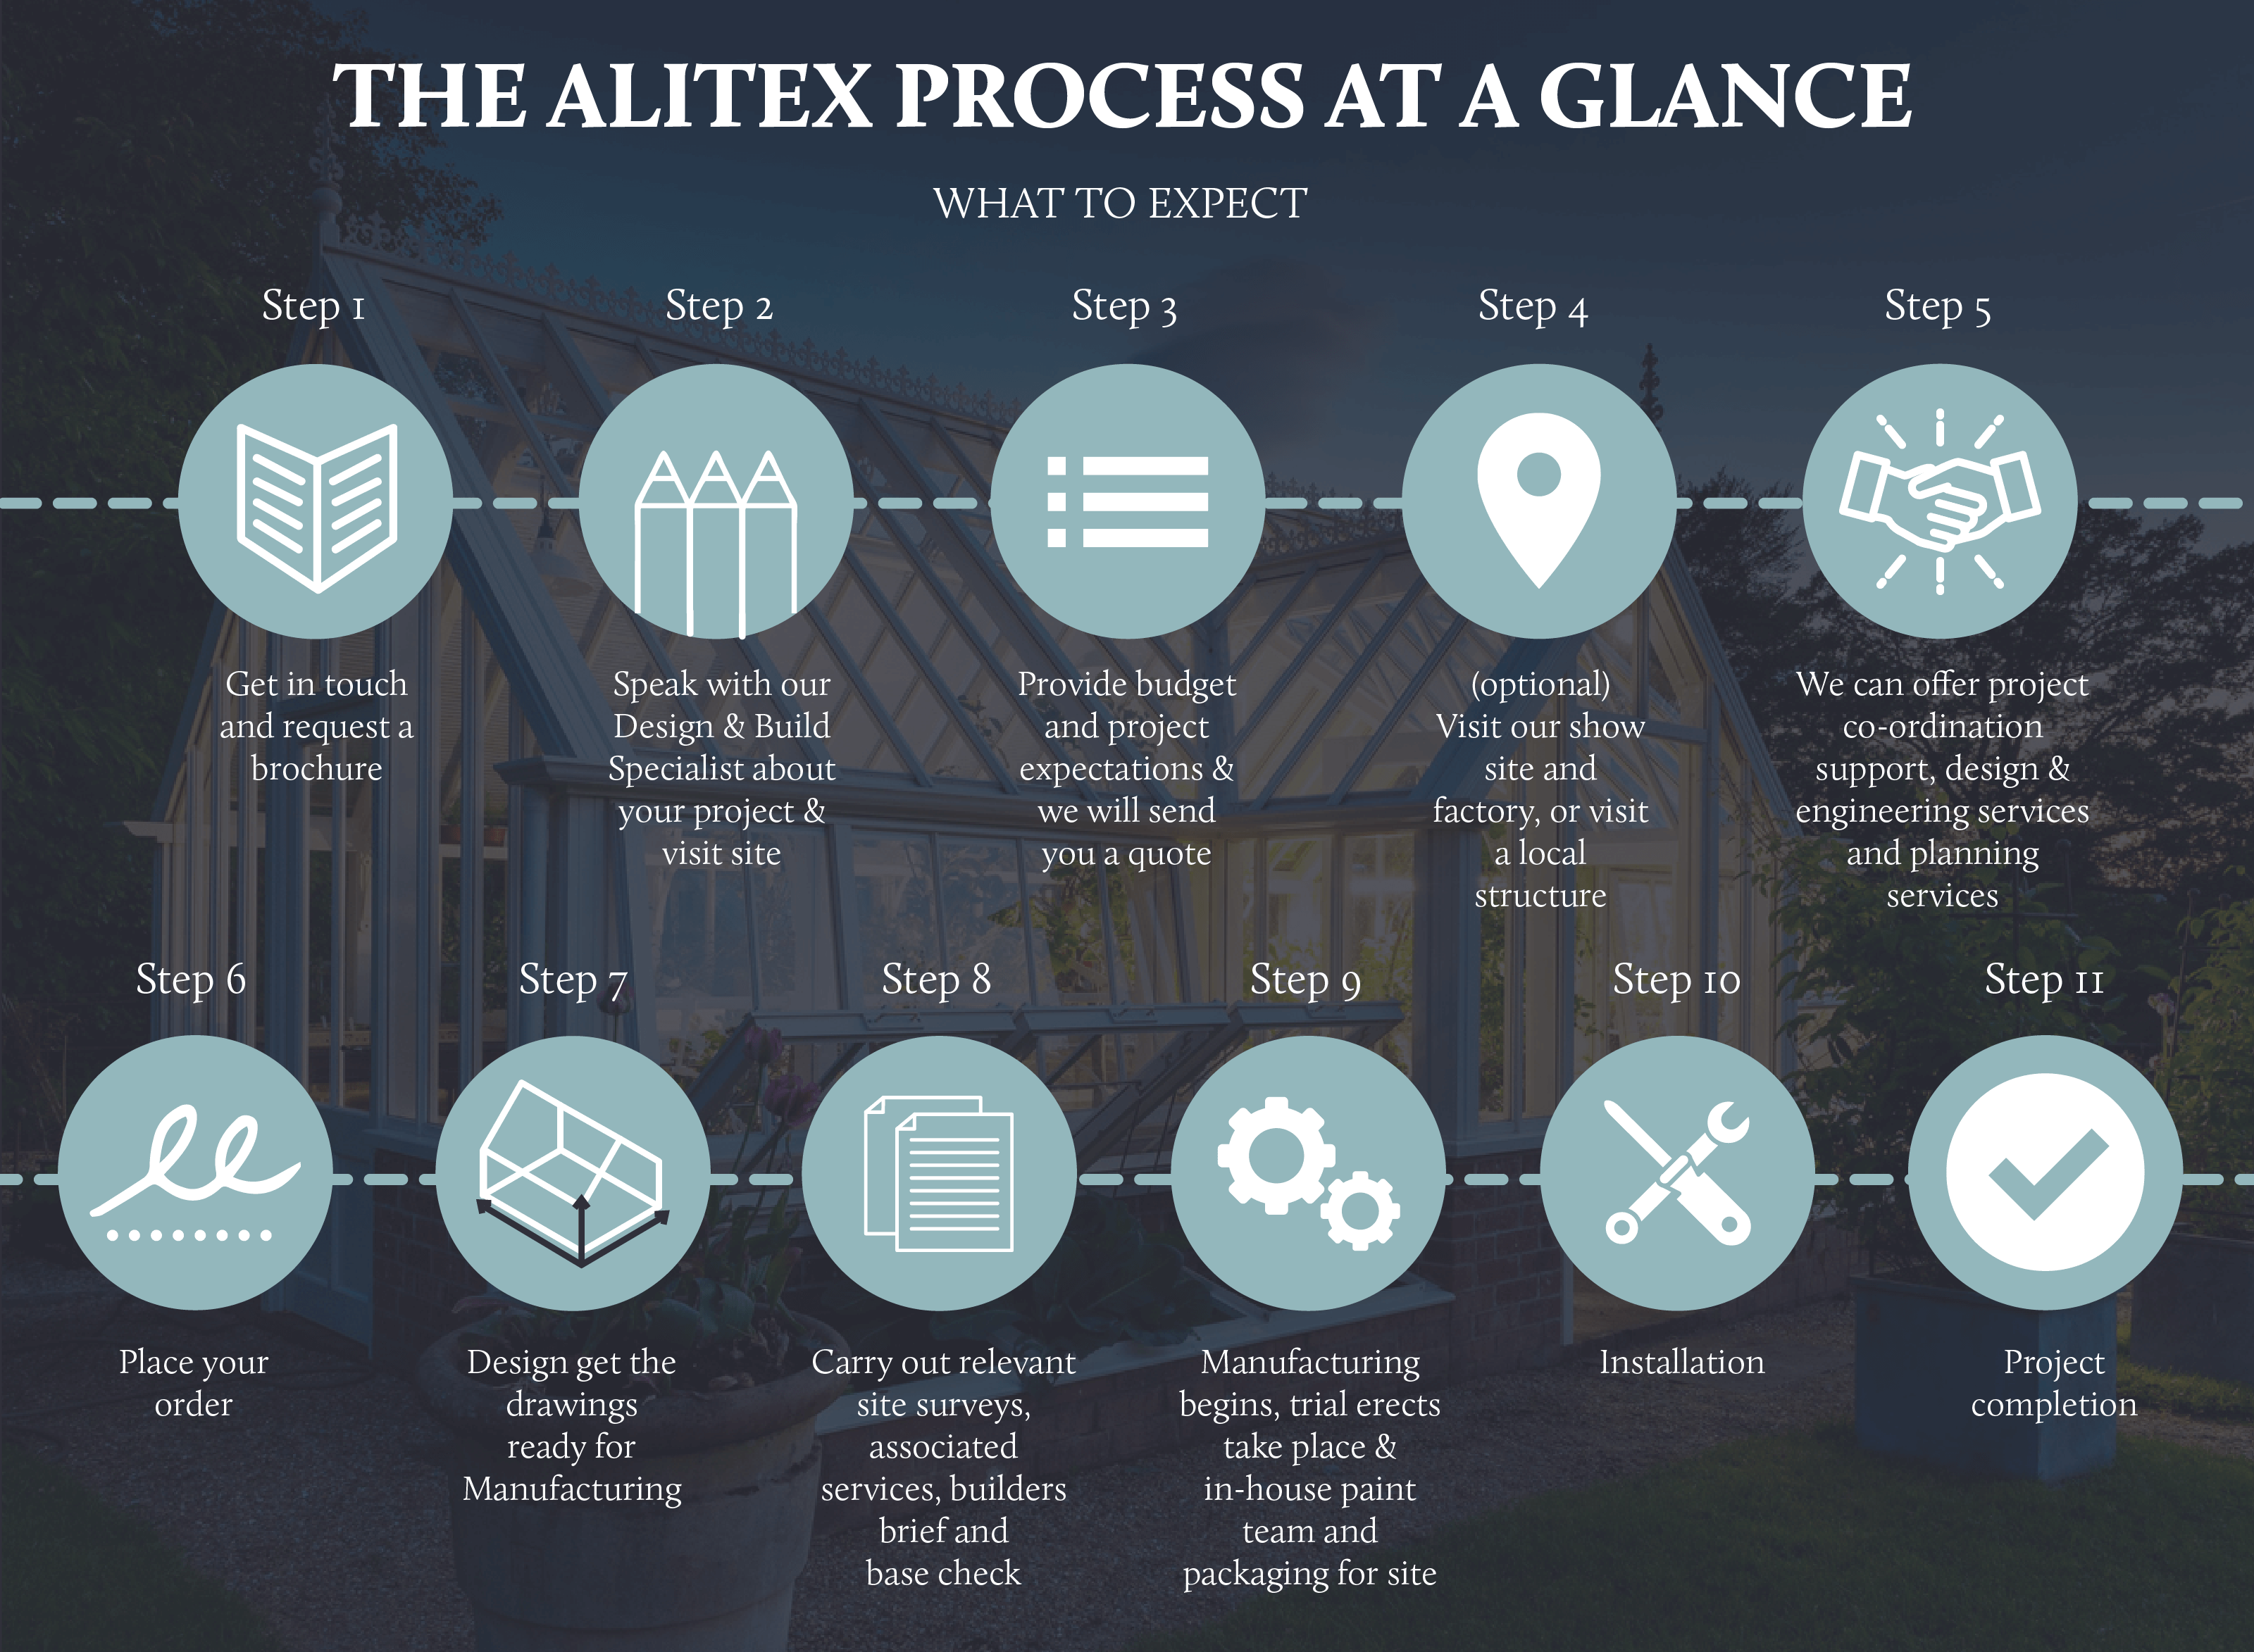 The Alitex Process At a Glance